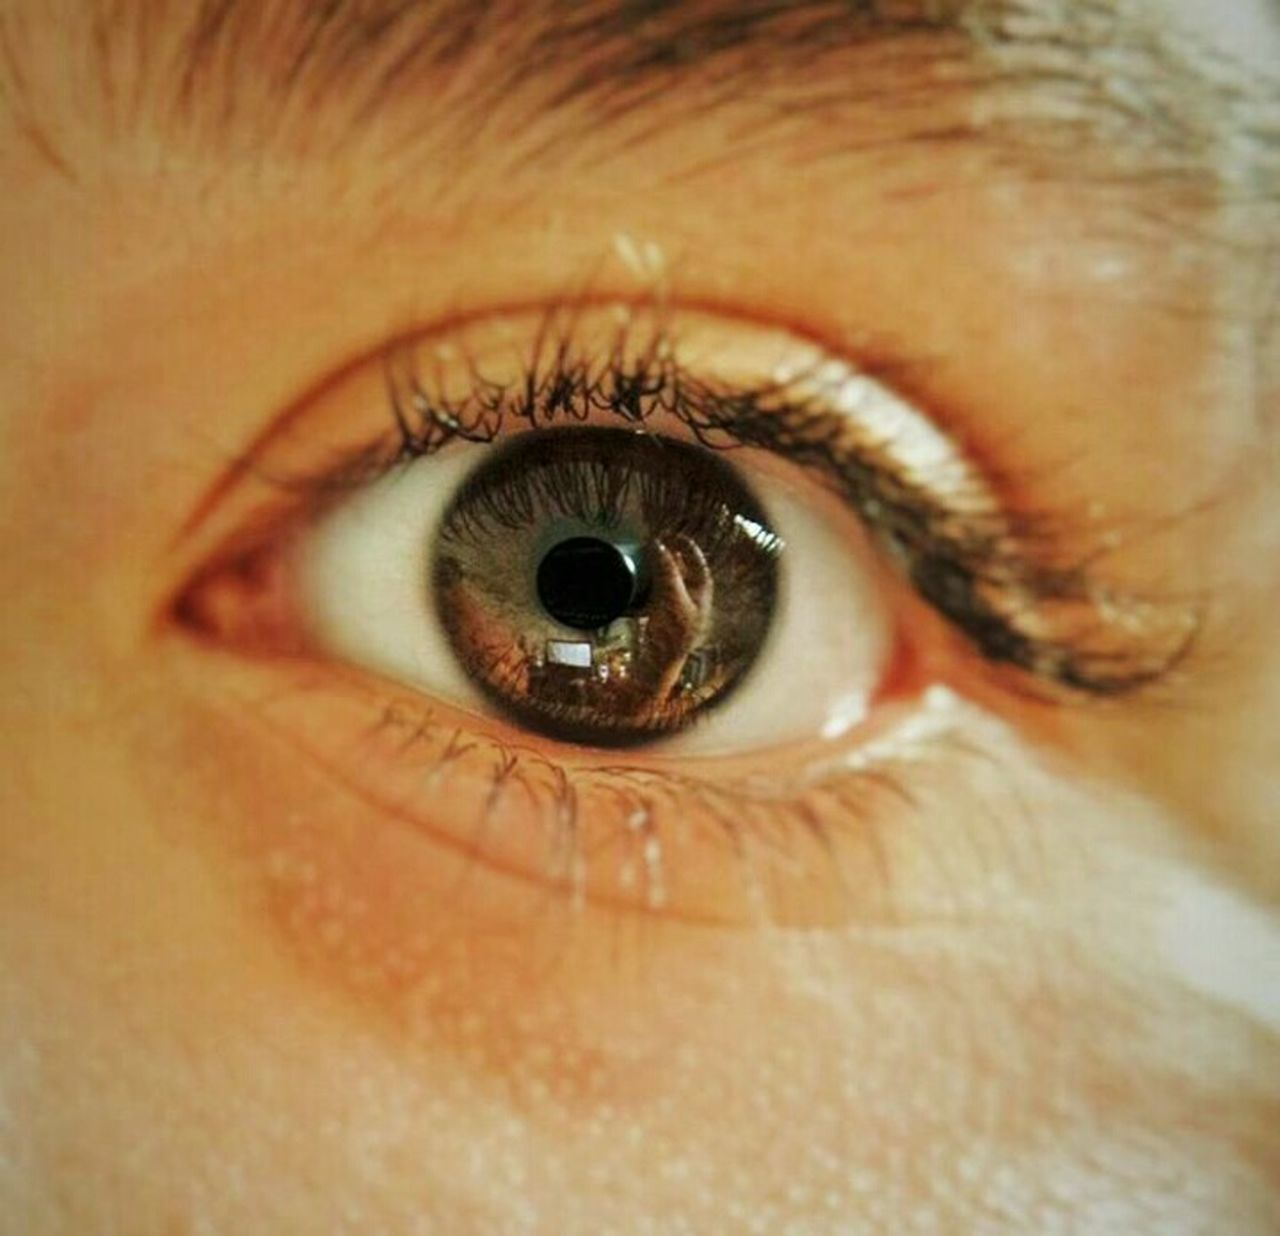 Eye Human Body Part Human Eye Close-up Looking At Camera Iris - Eye Eyeball Portrait One Person Day Macro Eyelash People Eyebrow Self Potrait Brown Eyes Brown Color Reflection Hands Camera EyeEmNewHere